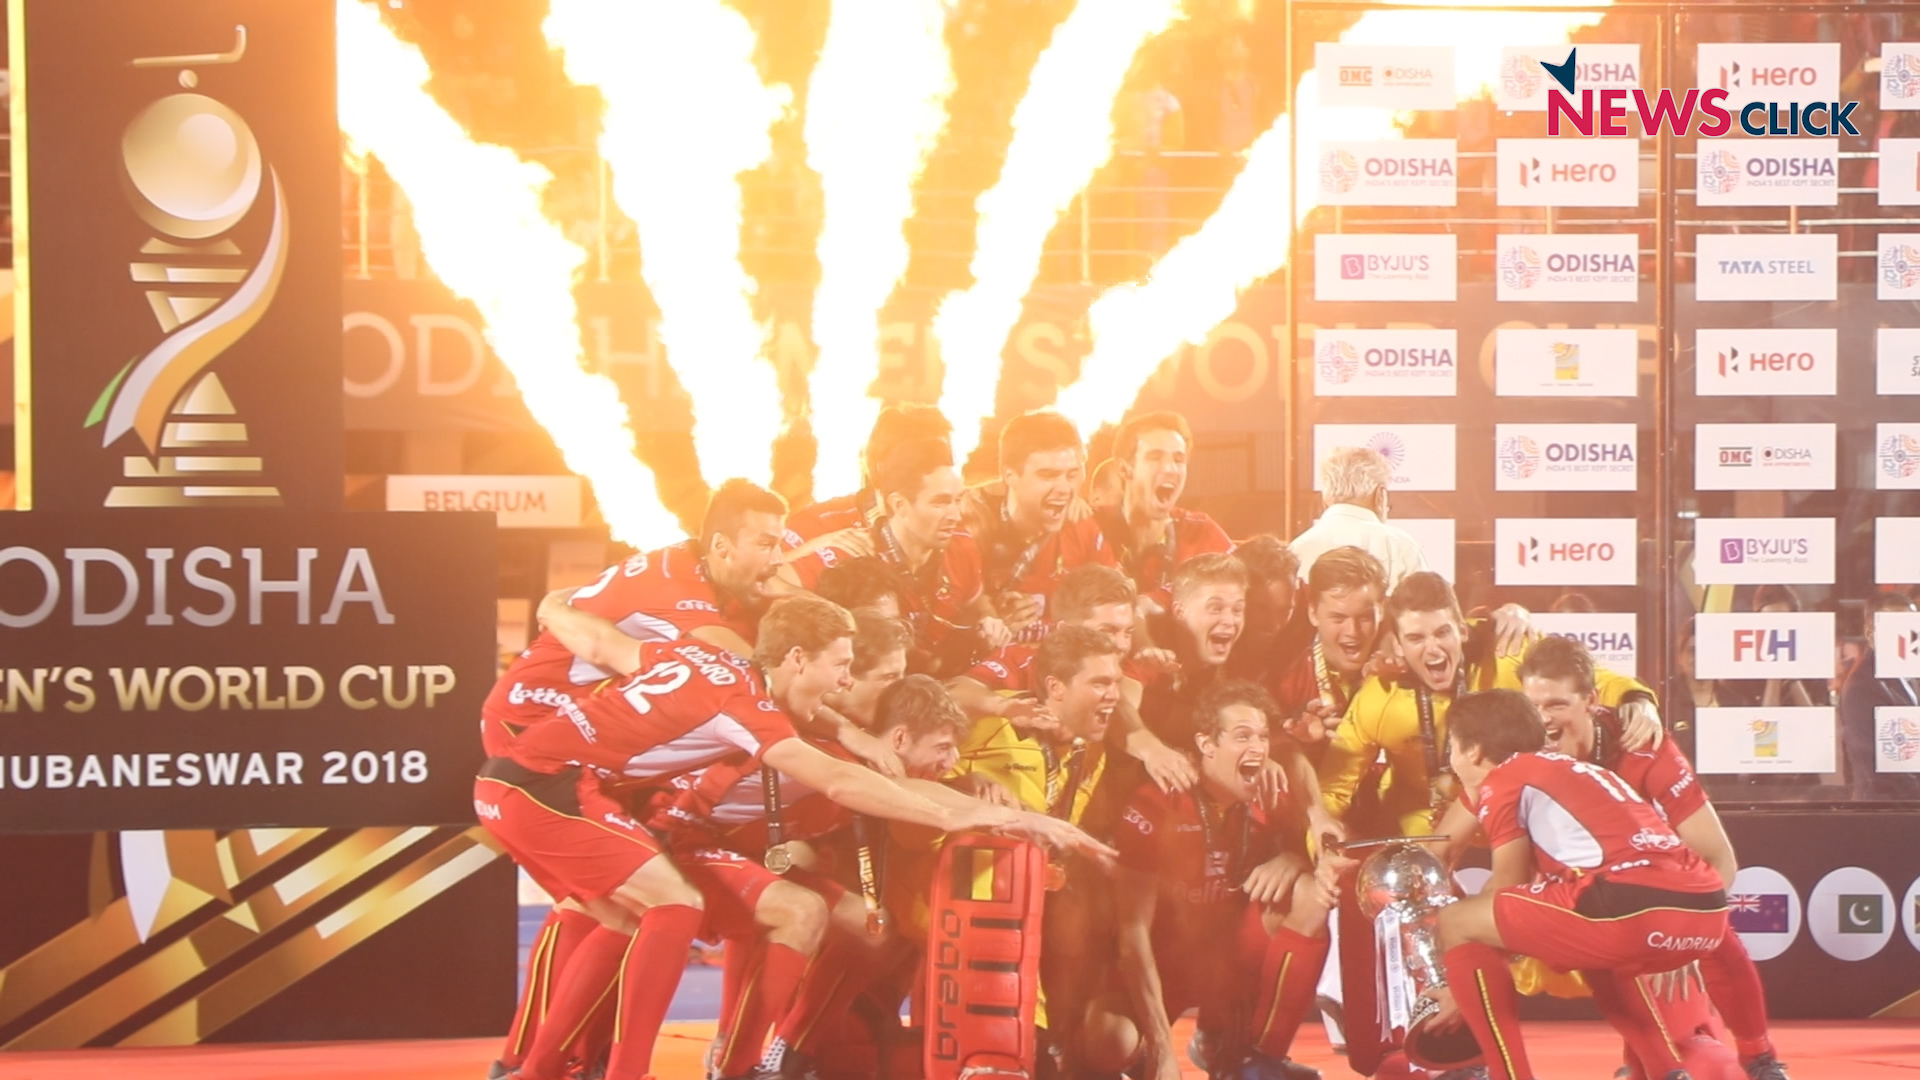 Belgium hockey team players celebrate after winning the FIH Men's Hockey World Cup